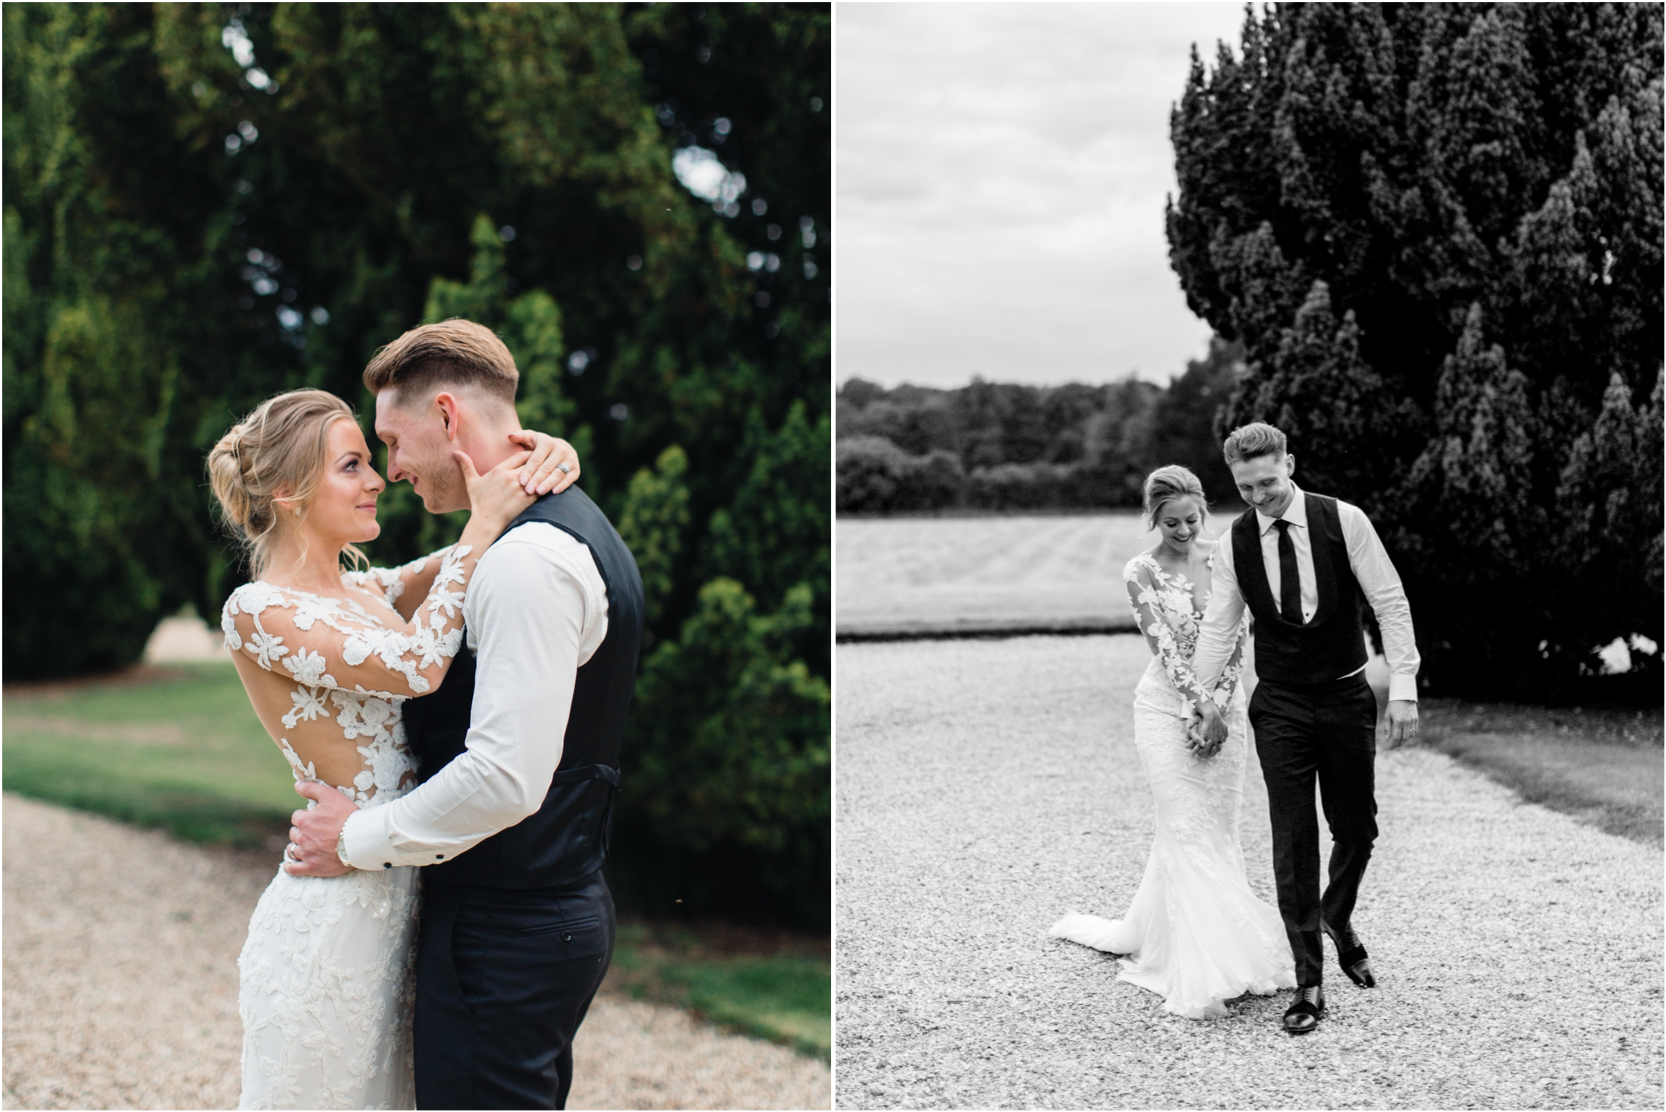 Gosfield Hall Wedding Photography Surrey Luxury Photographer 96.jpg